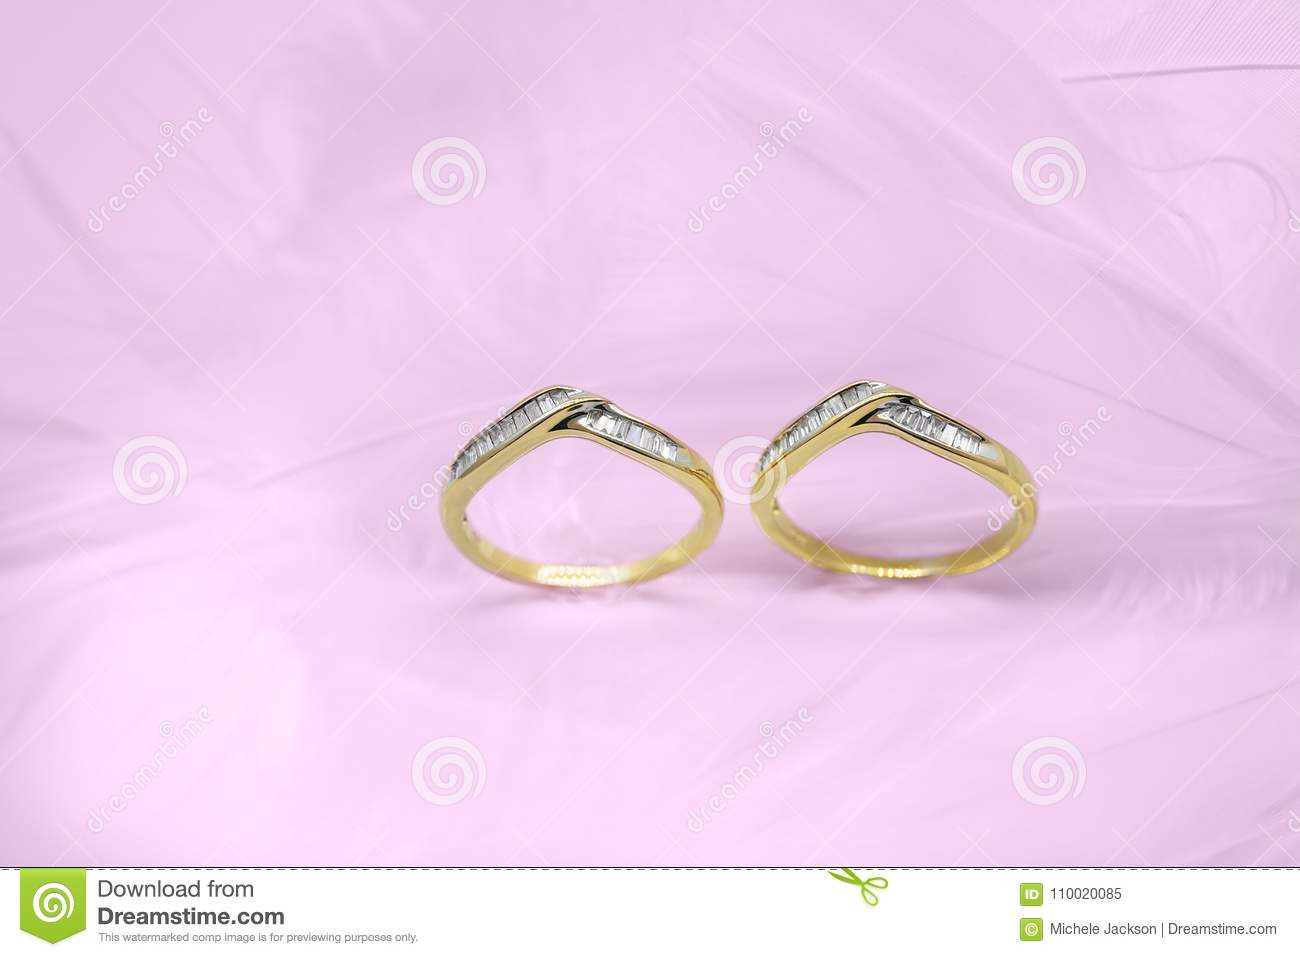 Two Wedding Bands On A Pink Background Stock Image - Image of ...